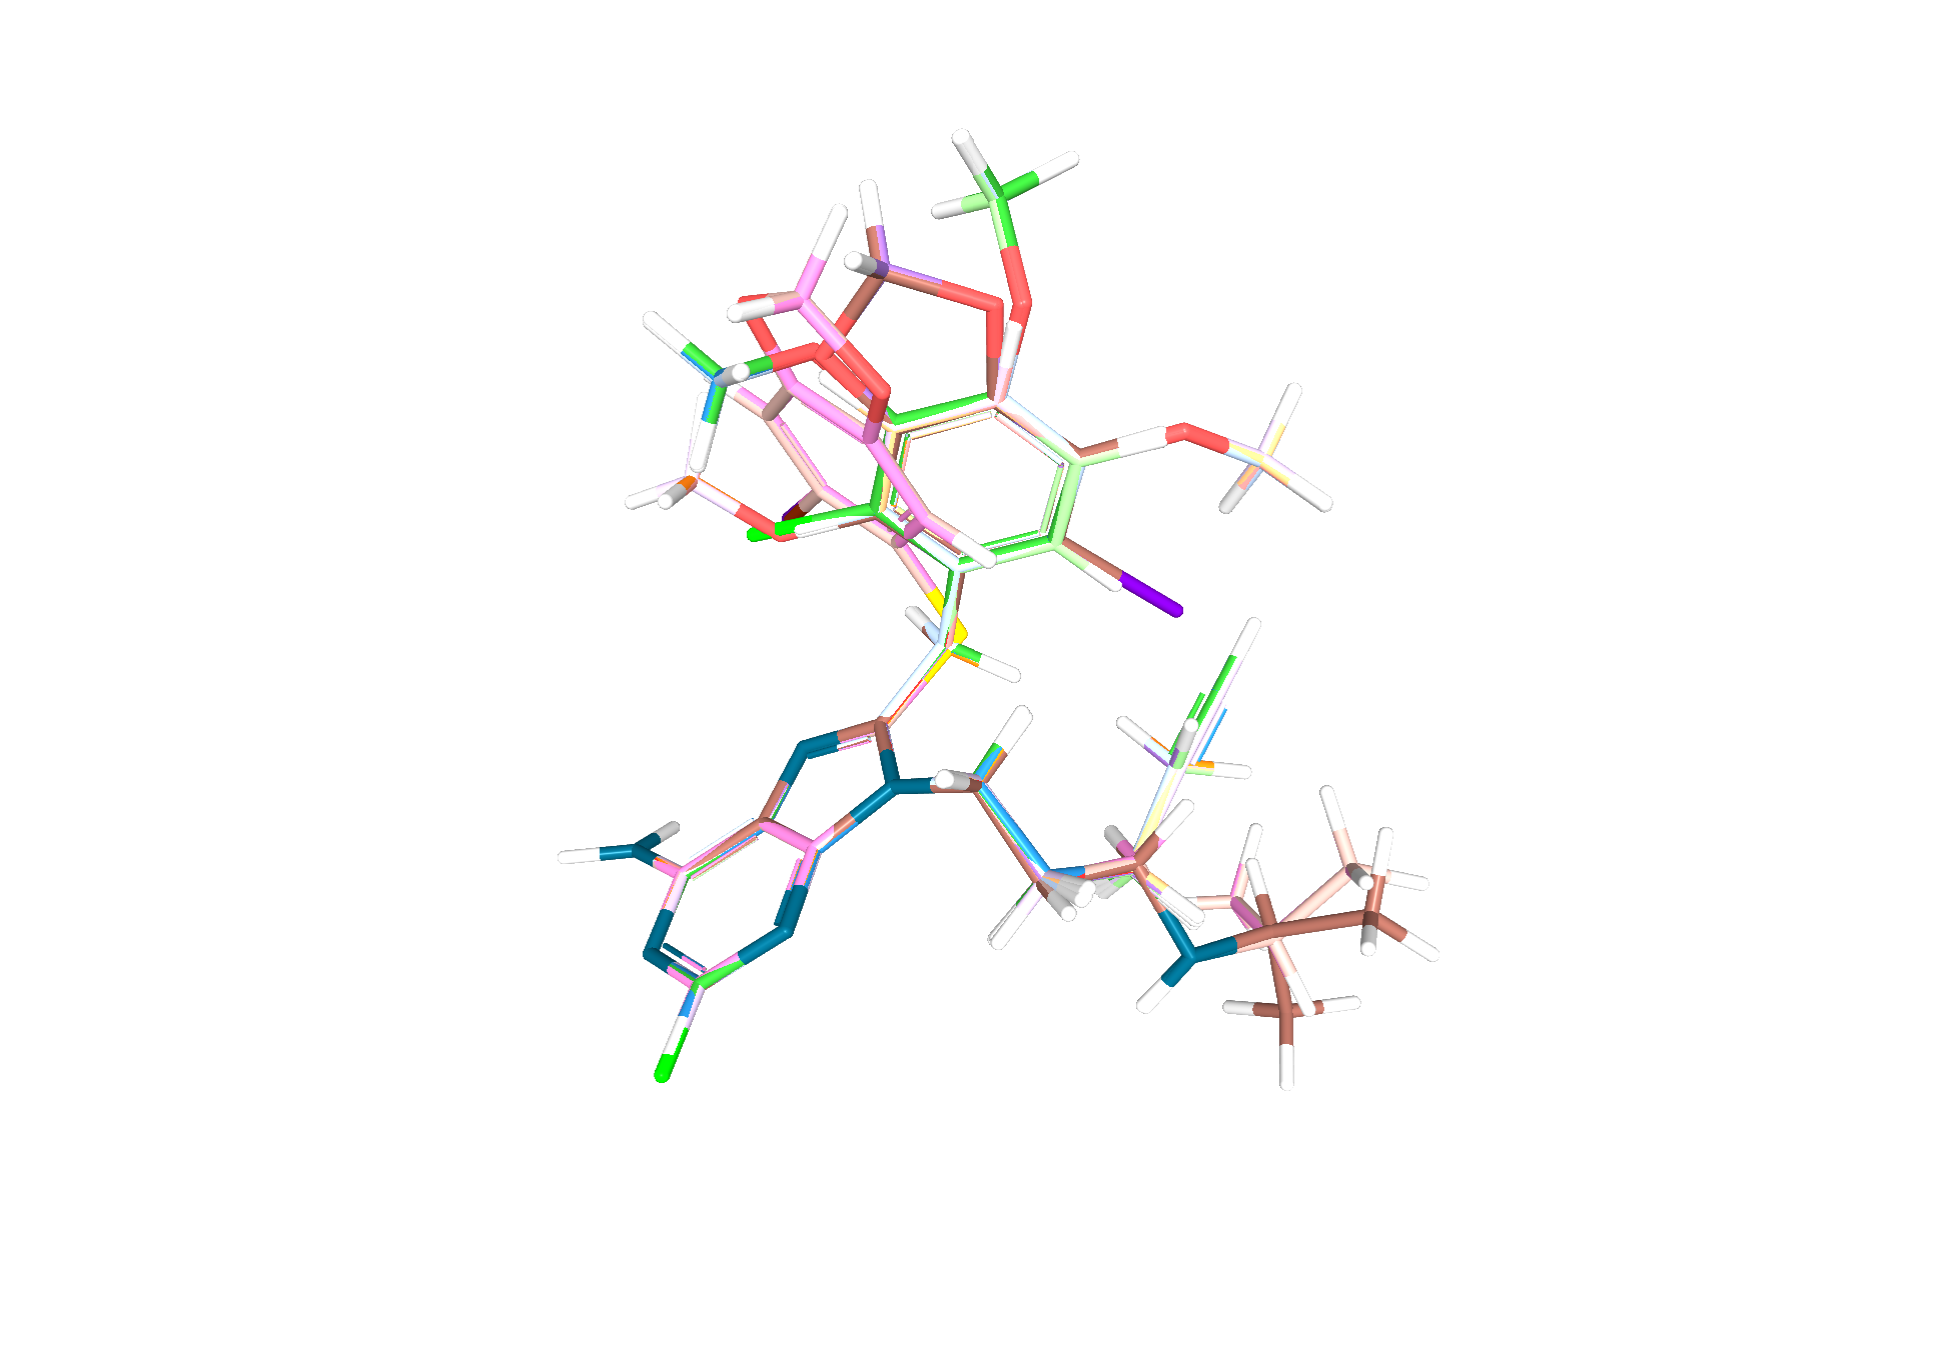 Final aligned and minimized molecules - all adenins are perfectly aligned and even other parts of the molecule are as well, if the MCS was bigger than the adenine fragment.